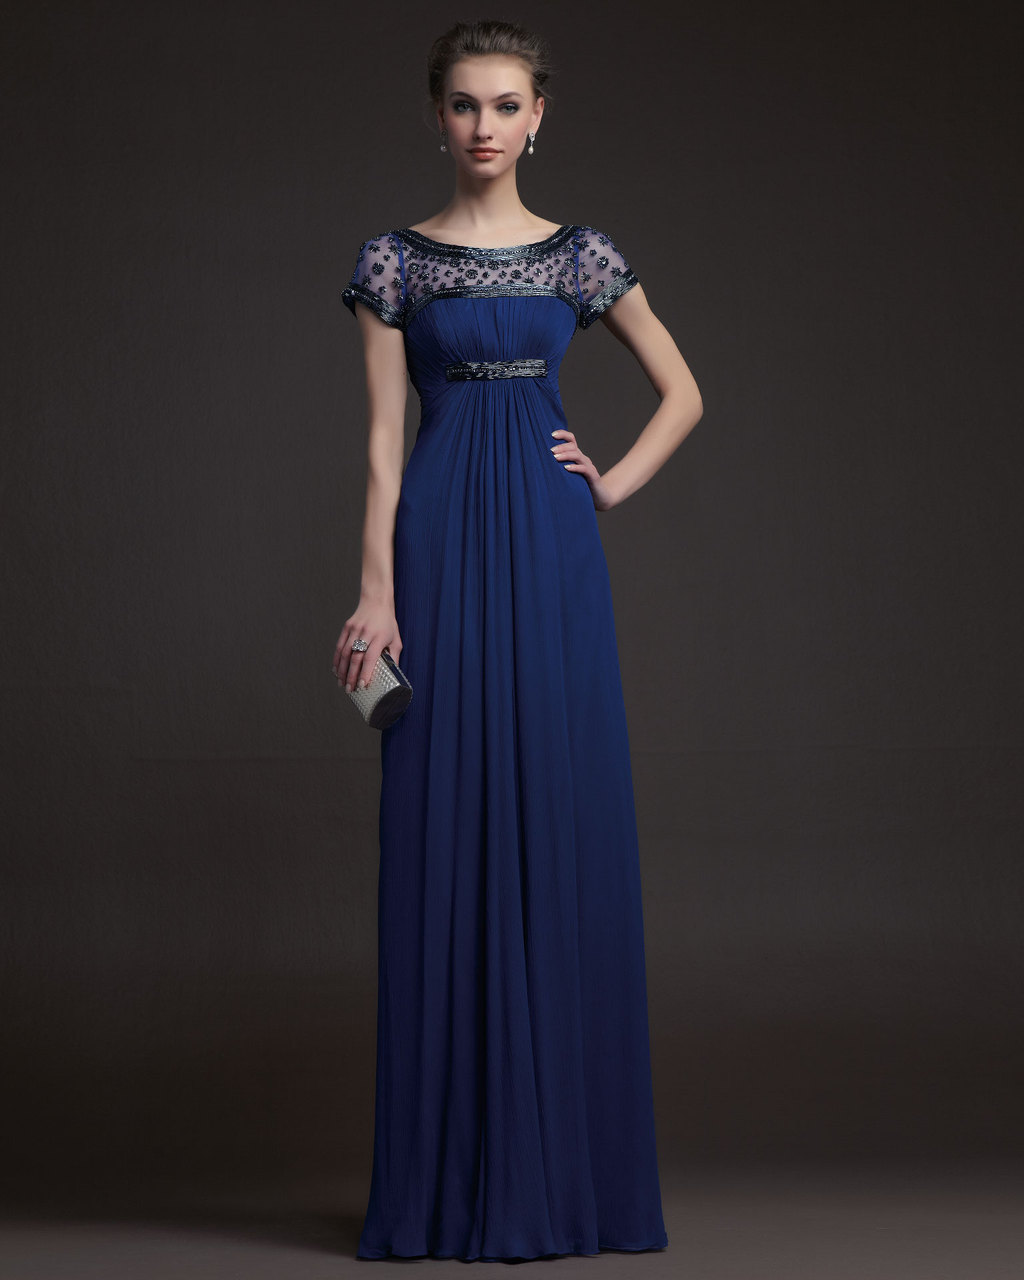 Temperley london deep navy bridesmaid dress inspiration gorgeous 2014 bridesmaid dresses from aire barcelona navy beaded ombrellifo Choice Image